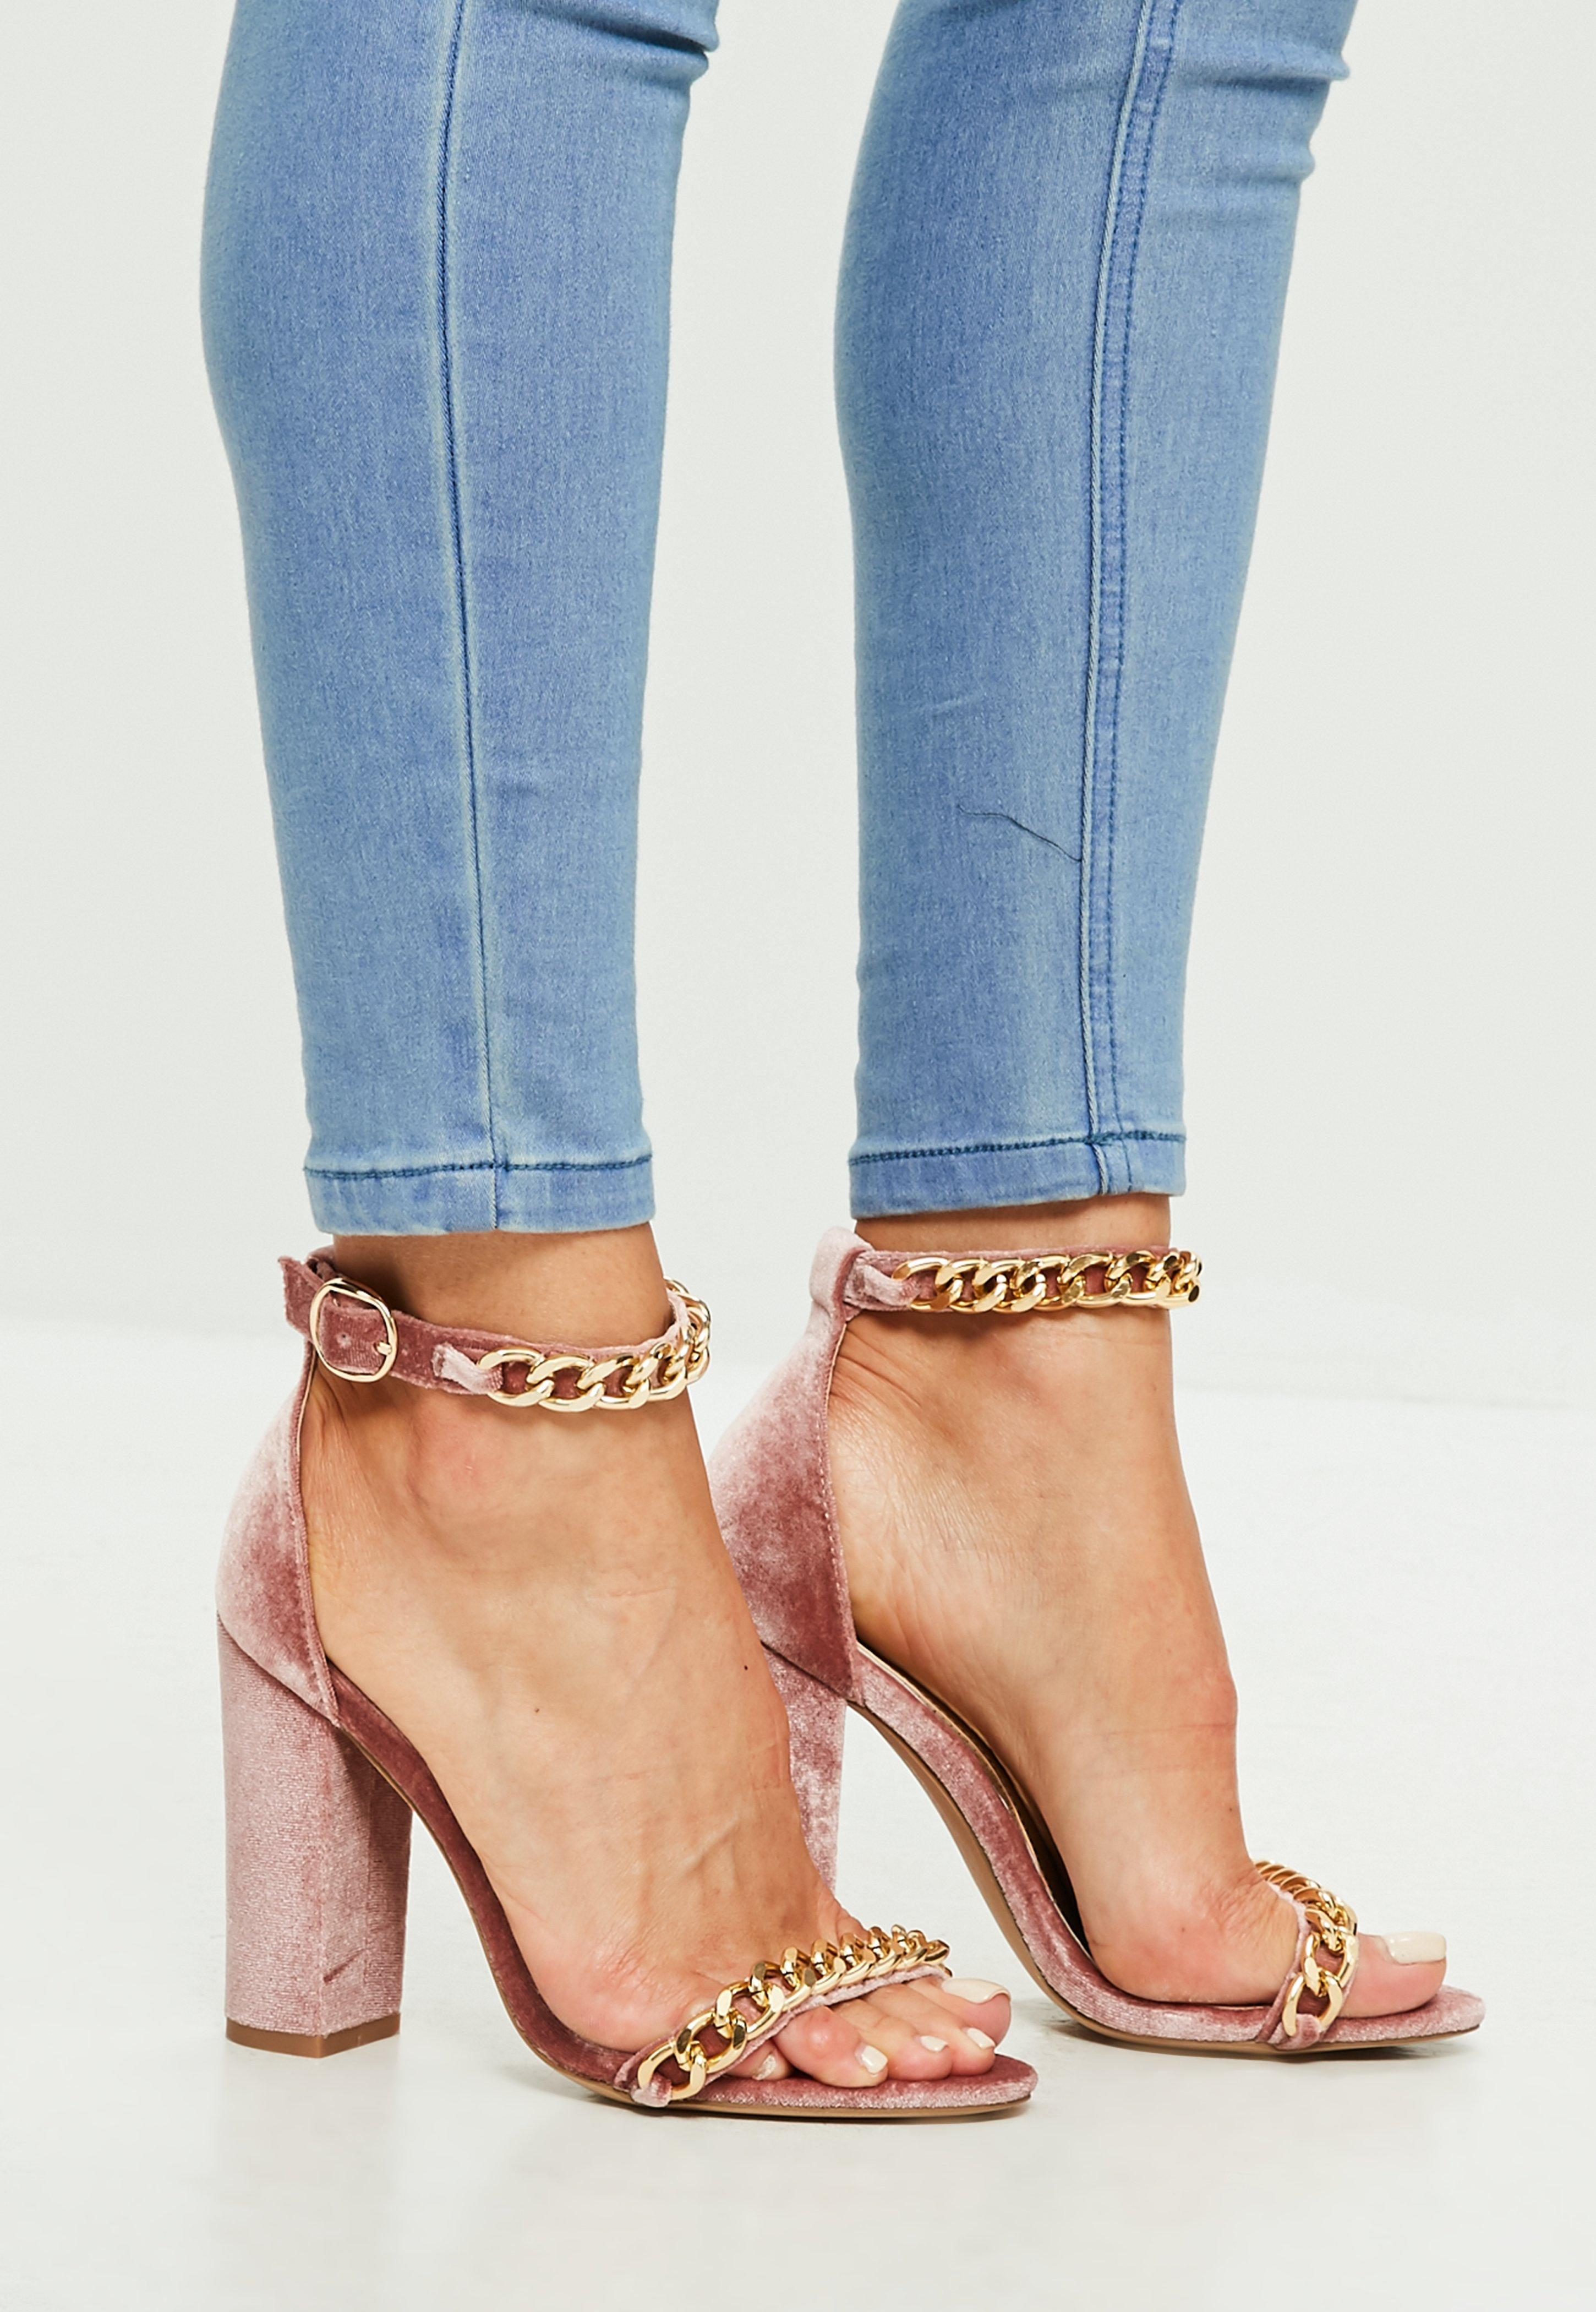 4cc42c4823df1f Lyst - Missguided Pink Chain Block Heeled Sandals in Pink